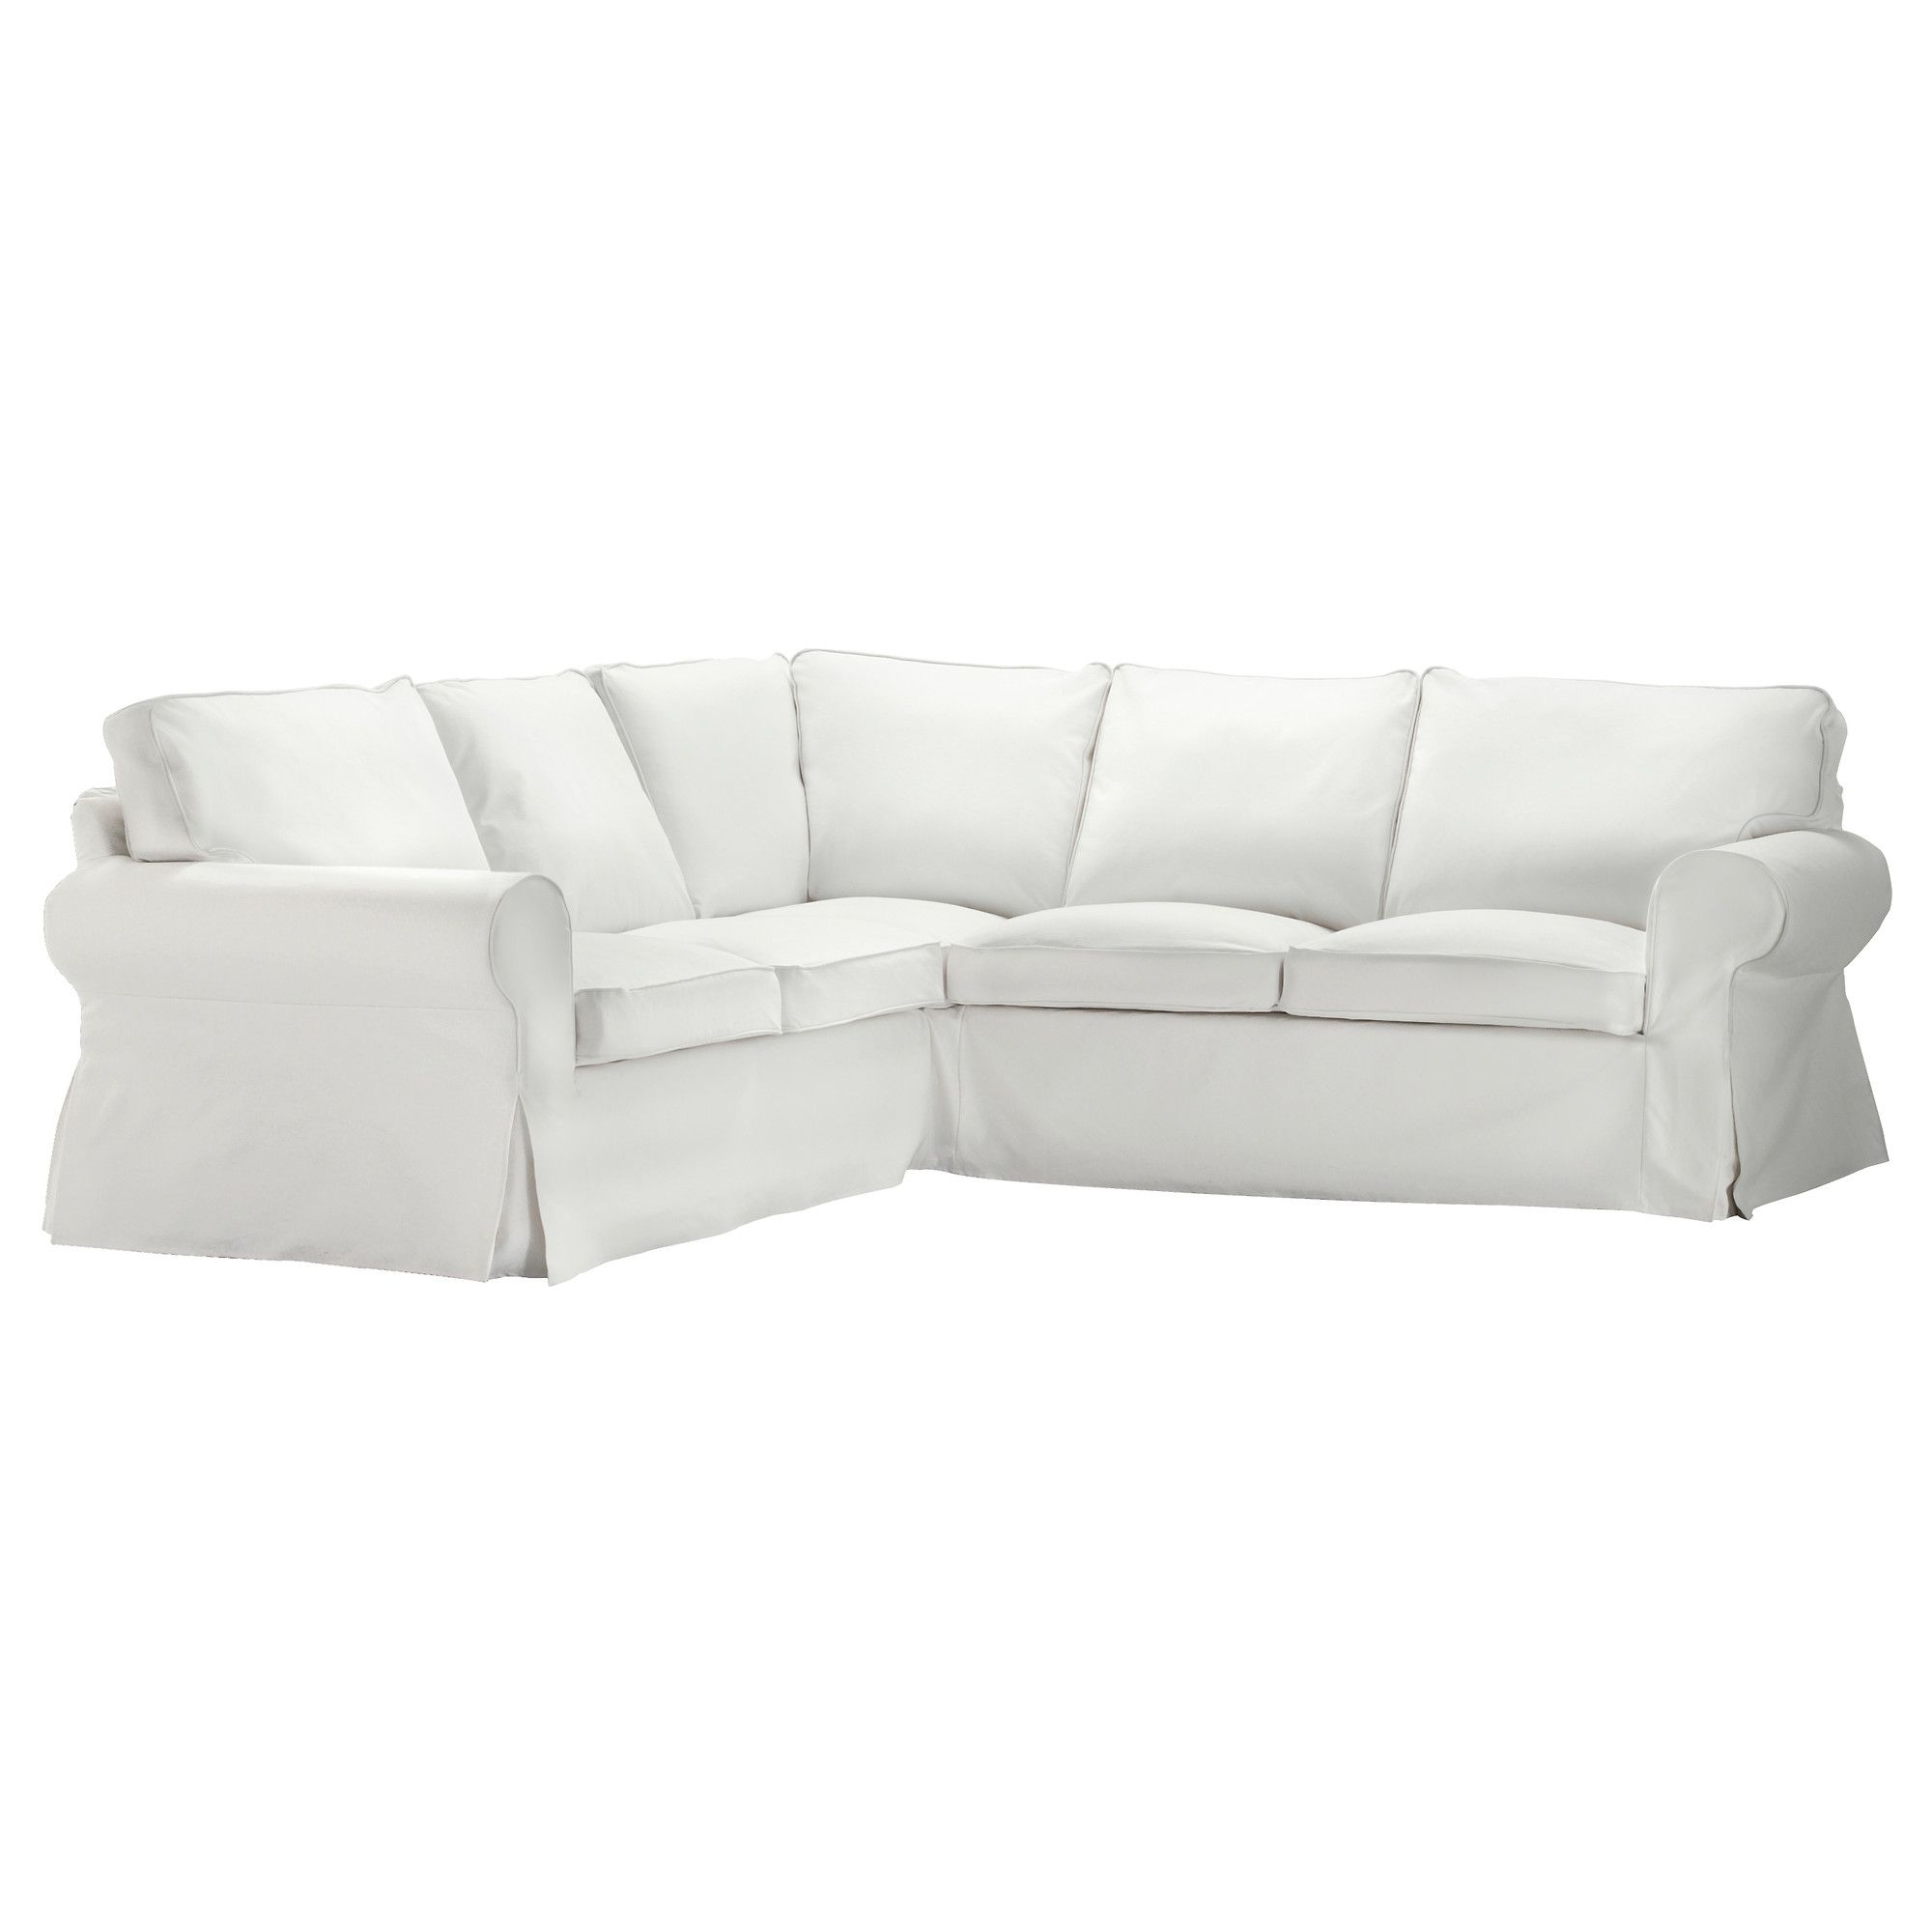 Ikea L Shaped Sofa Bed Cover Us - Furniture And Home Furnishings | White Sectional Sofa